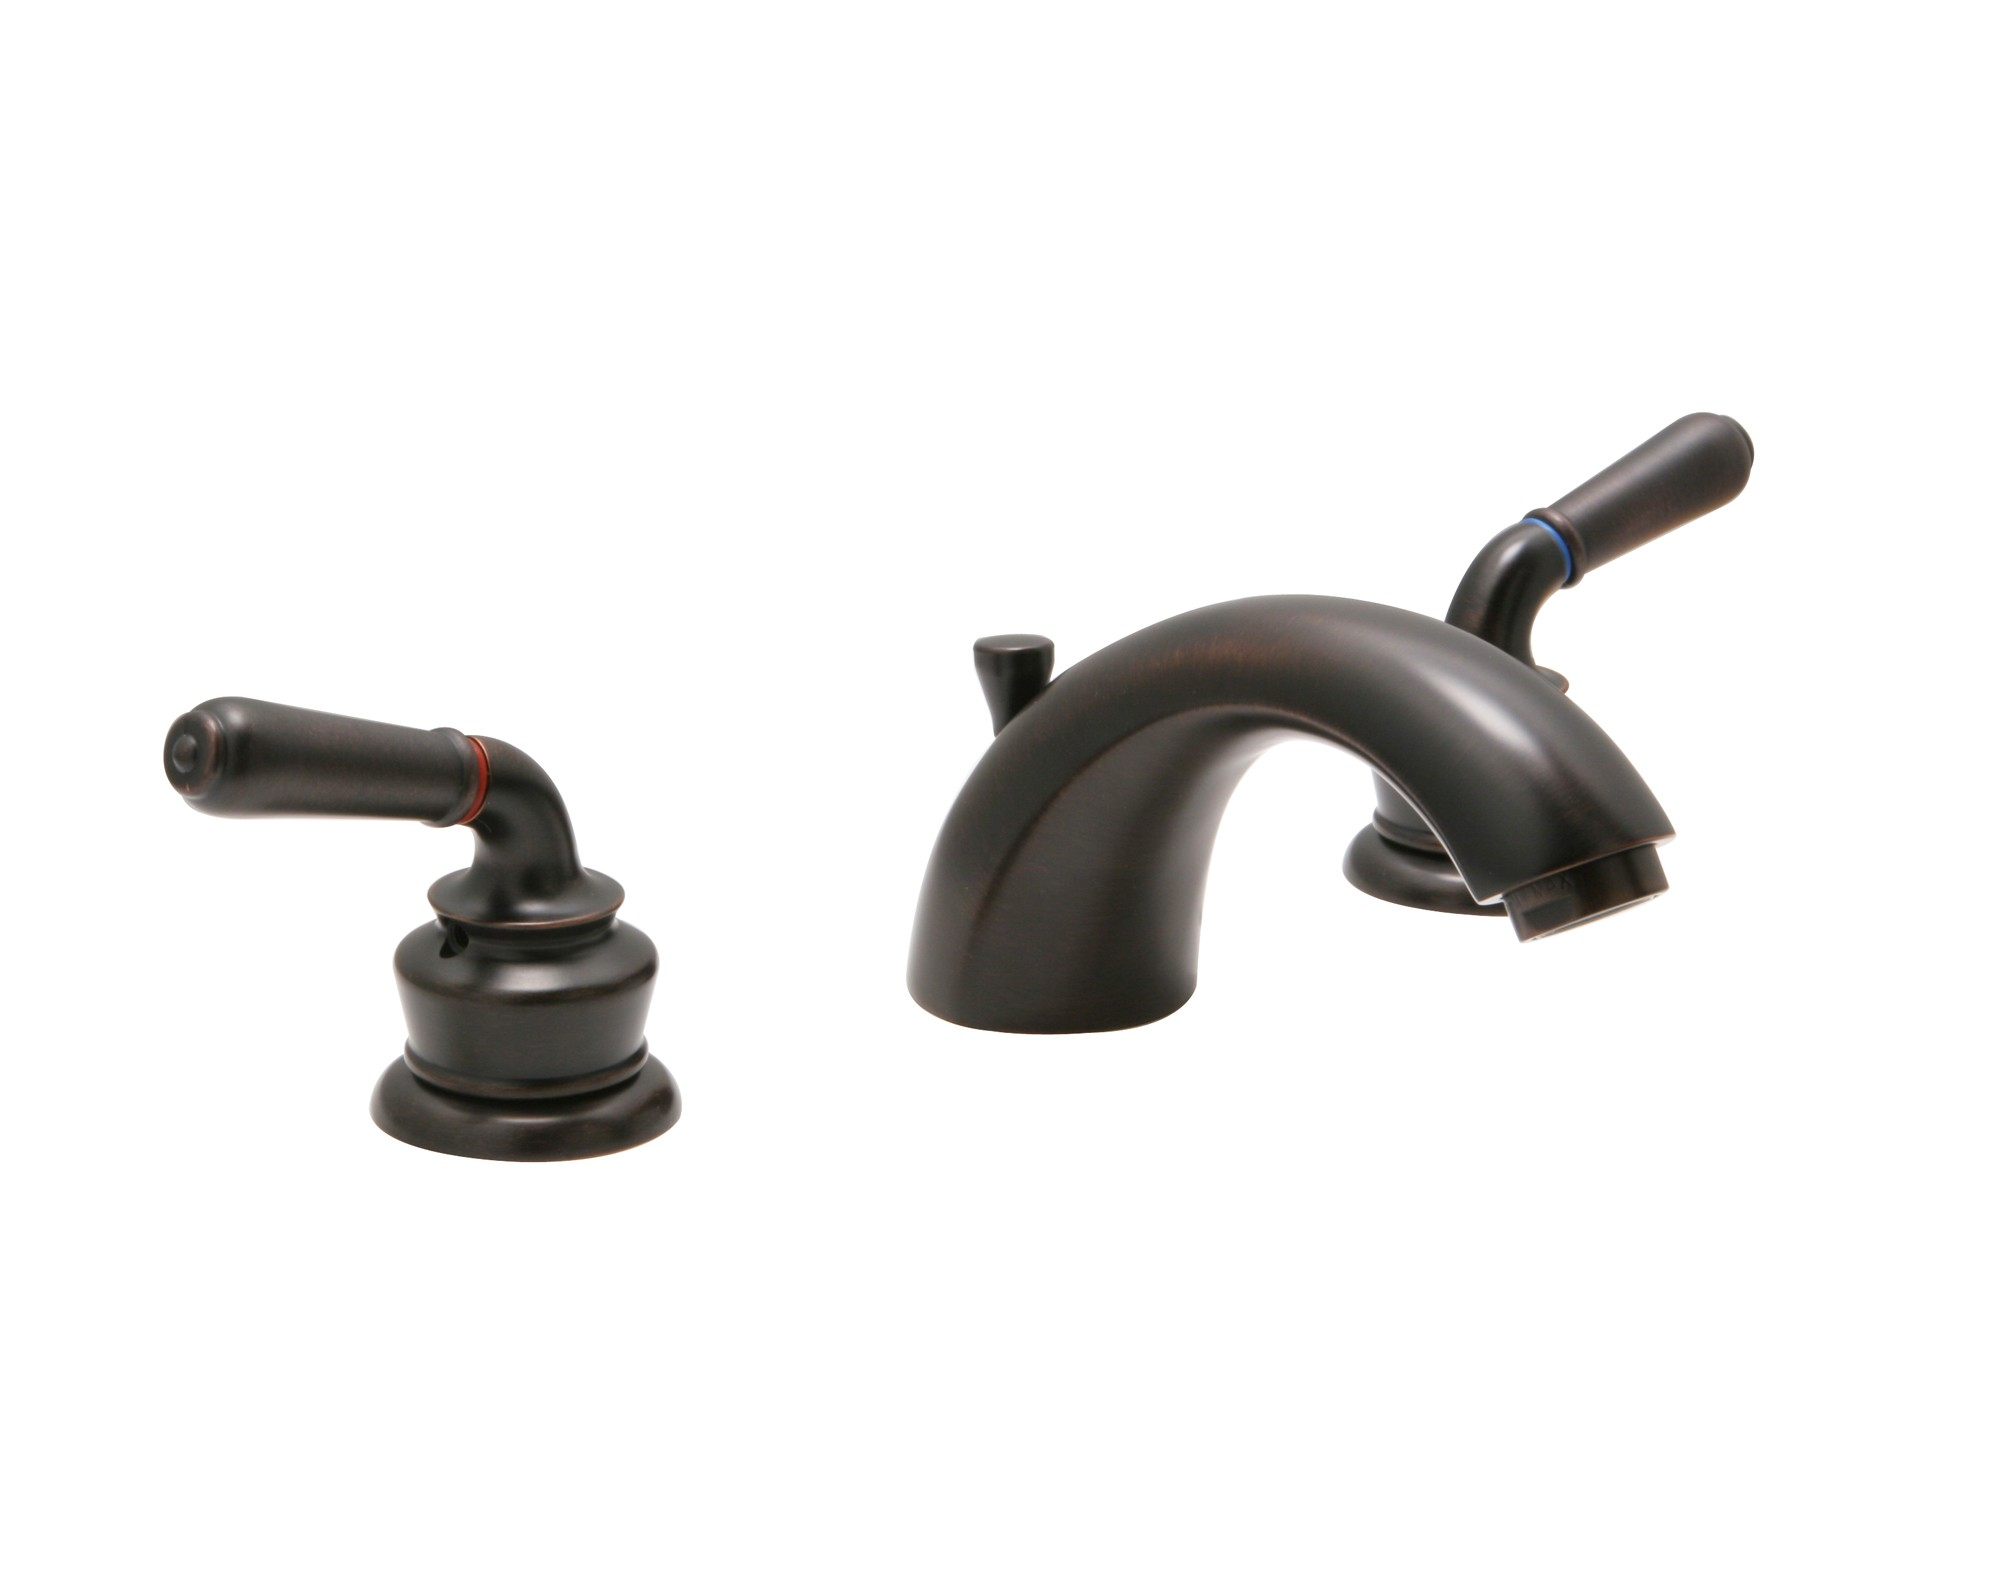 Cypress Widespread Faucet W4520603-1